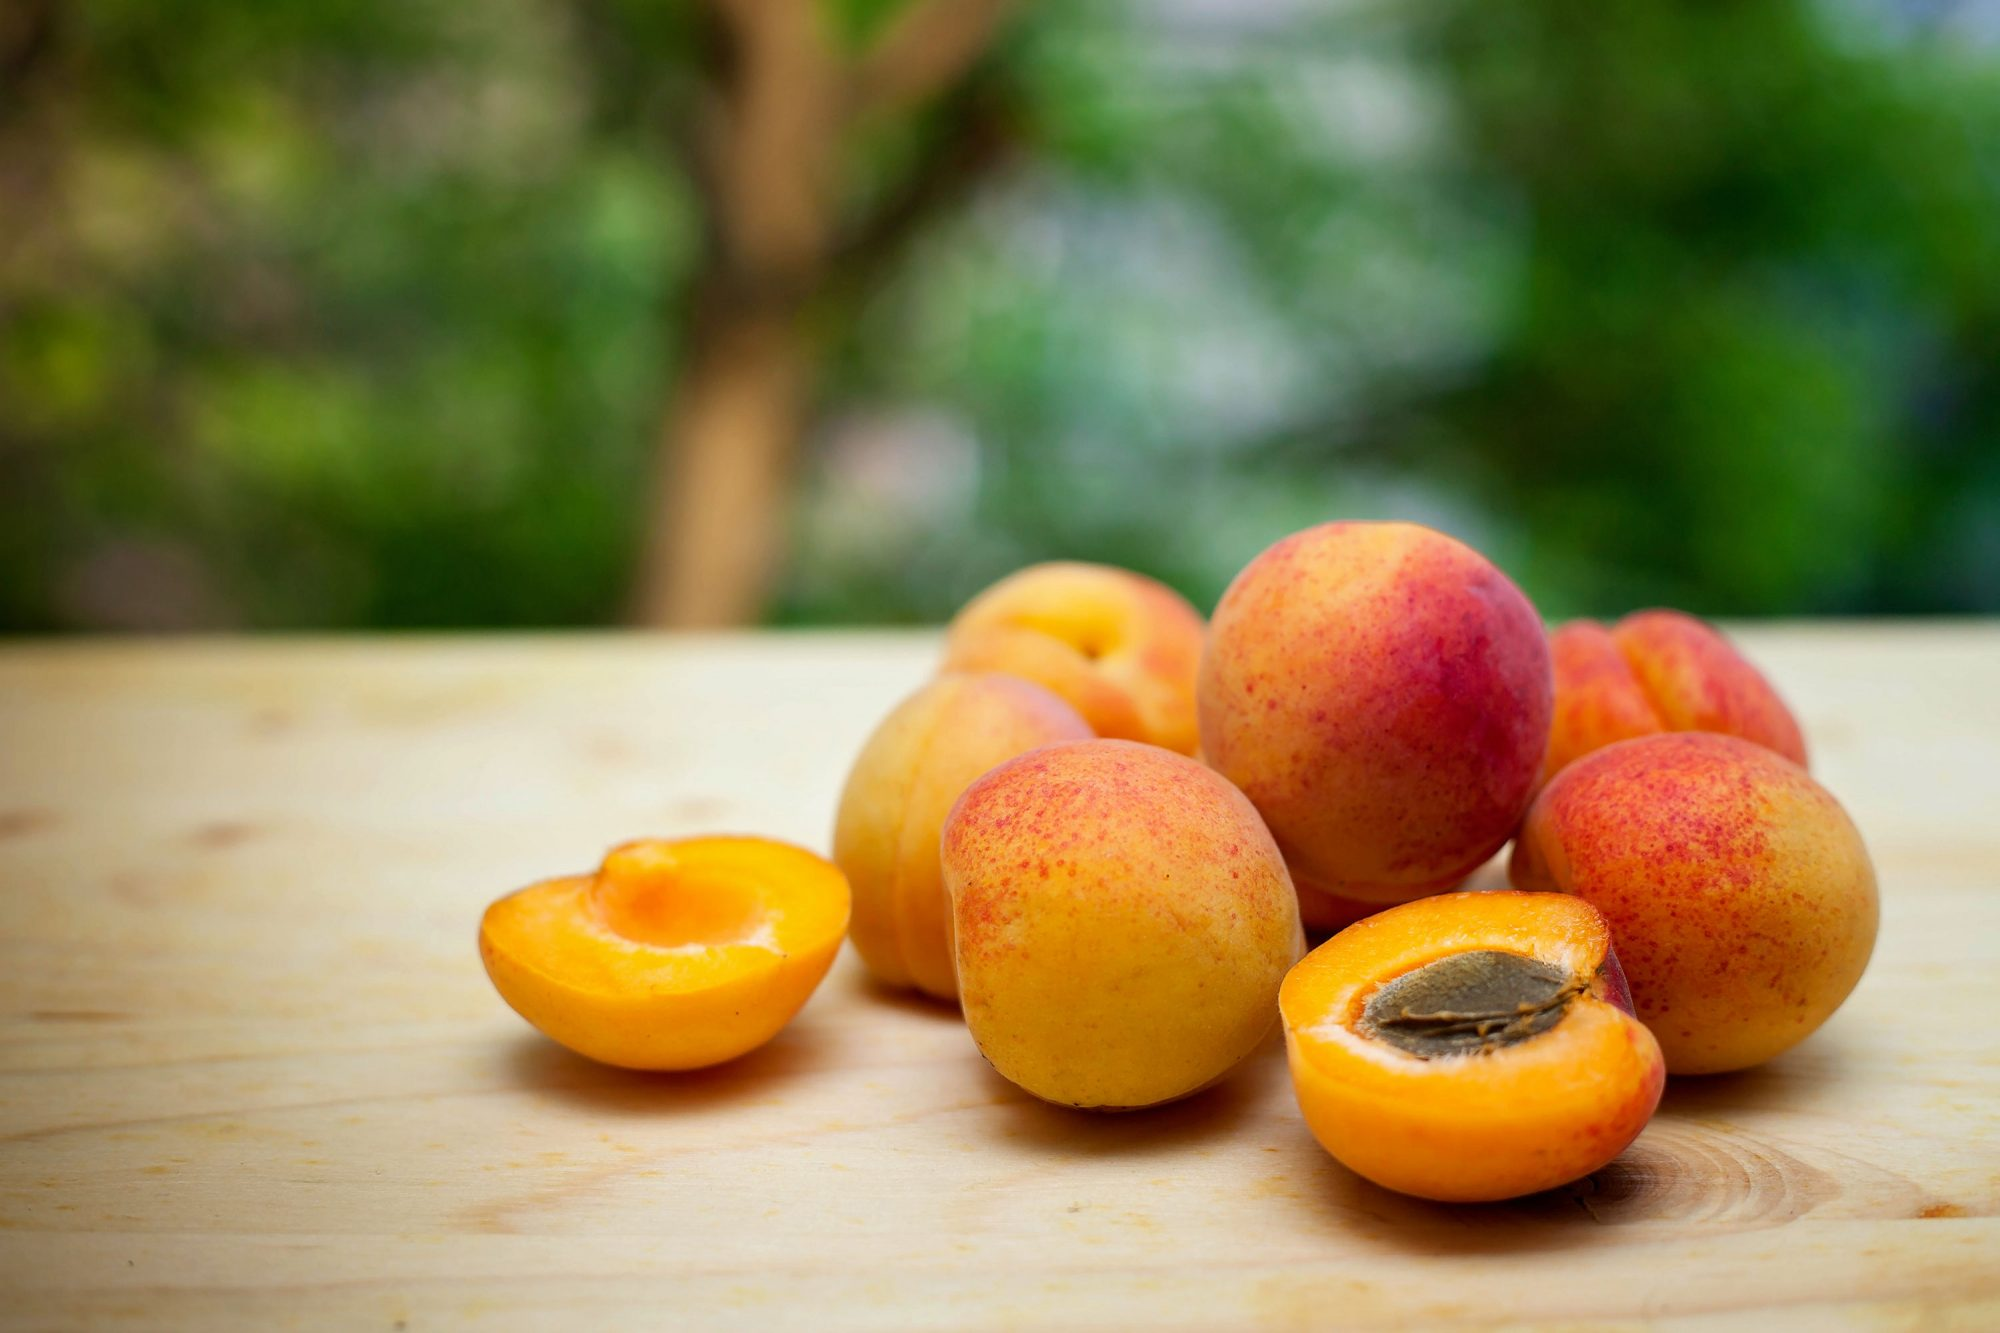 Apricots on wooden table